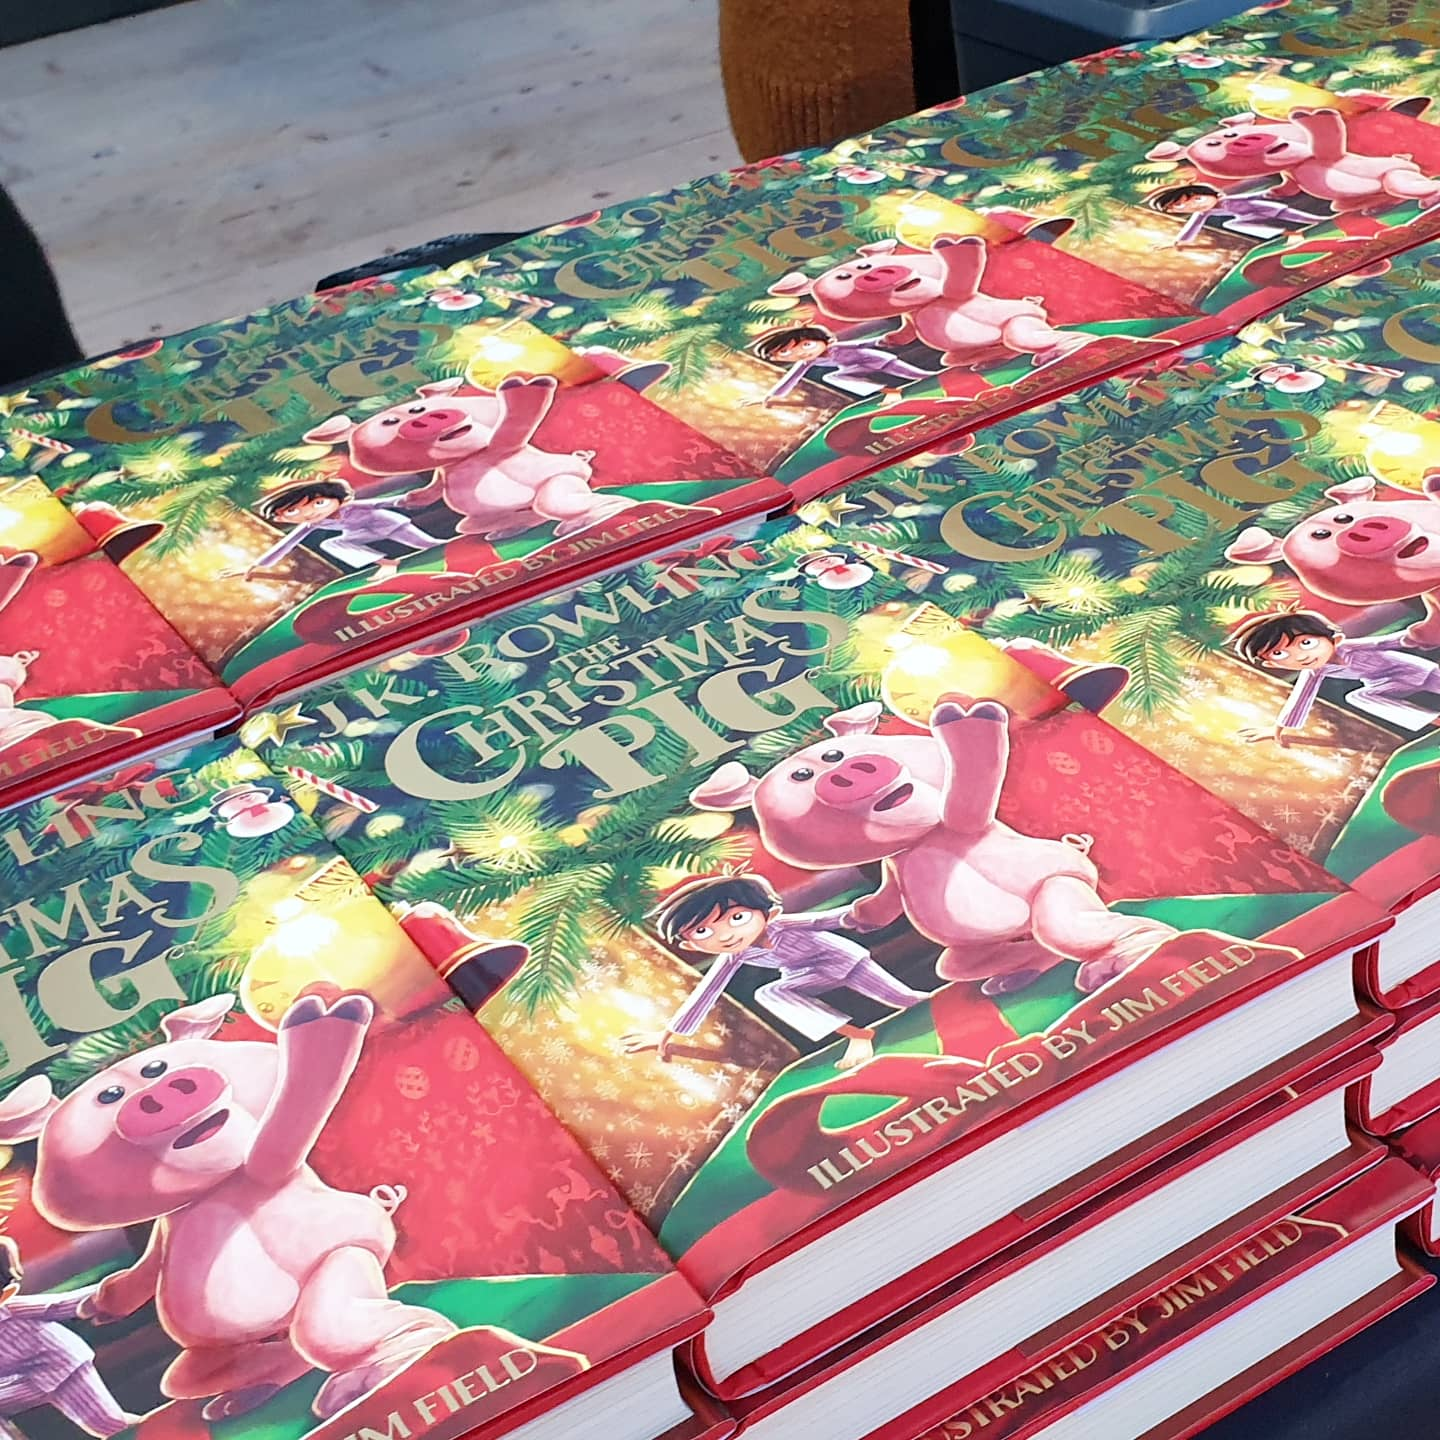 table full of the christmas pig books